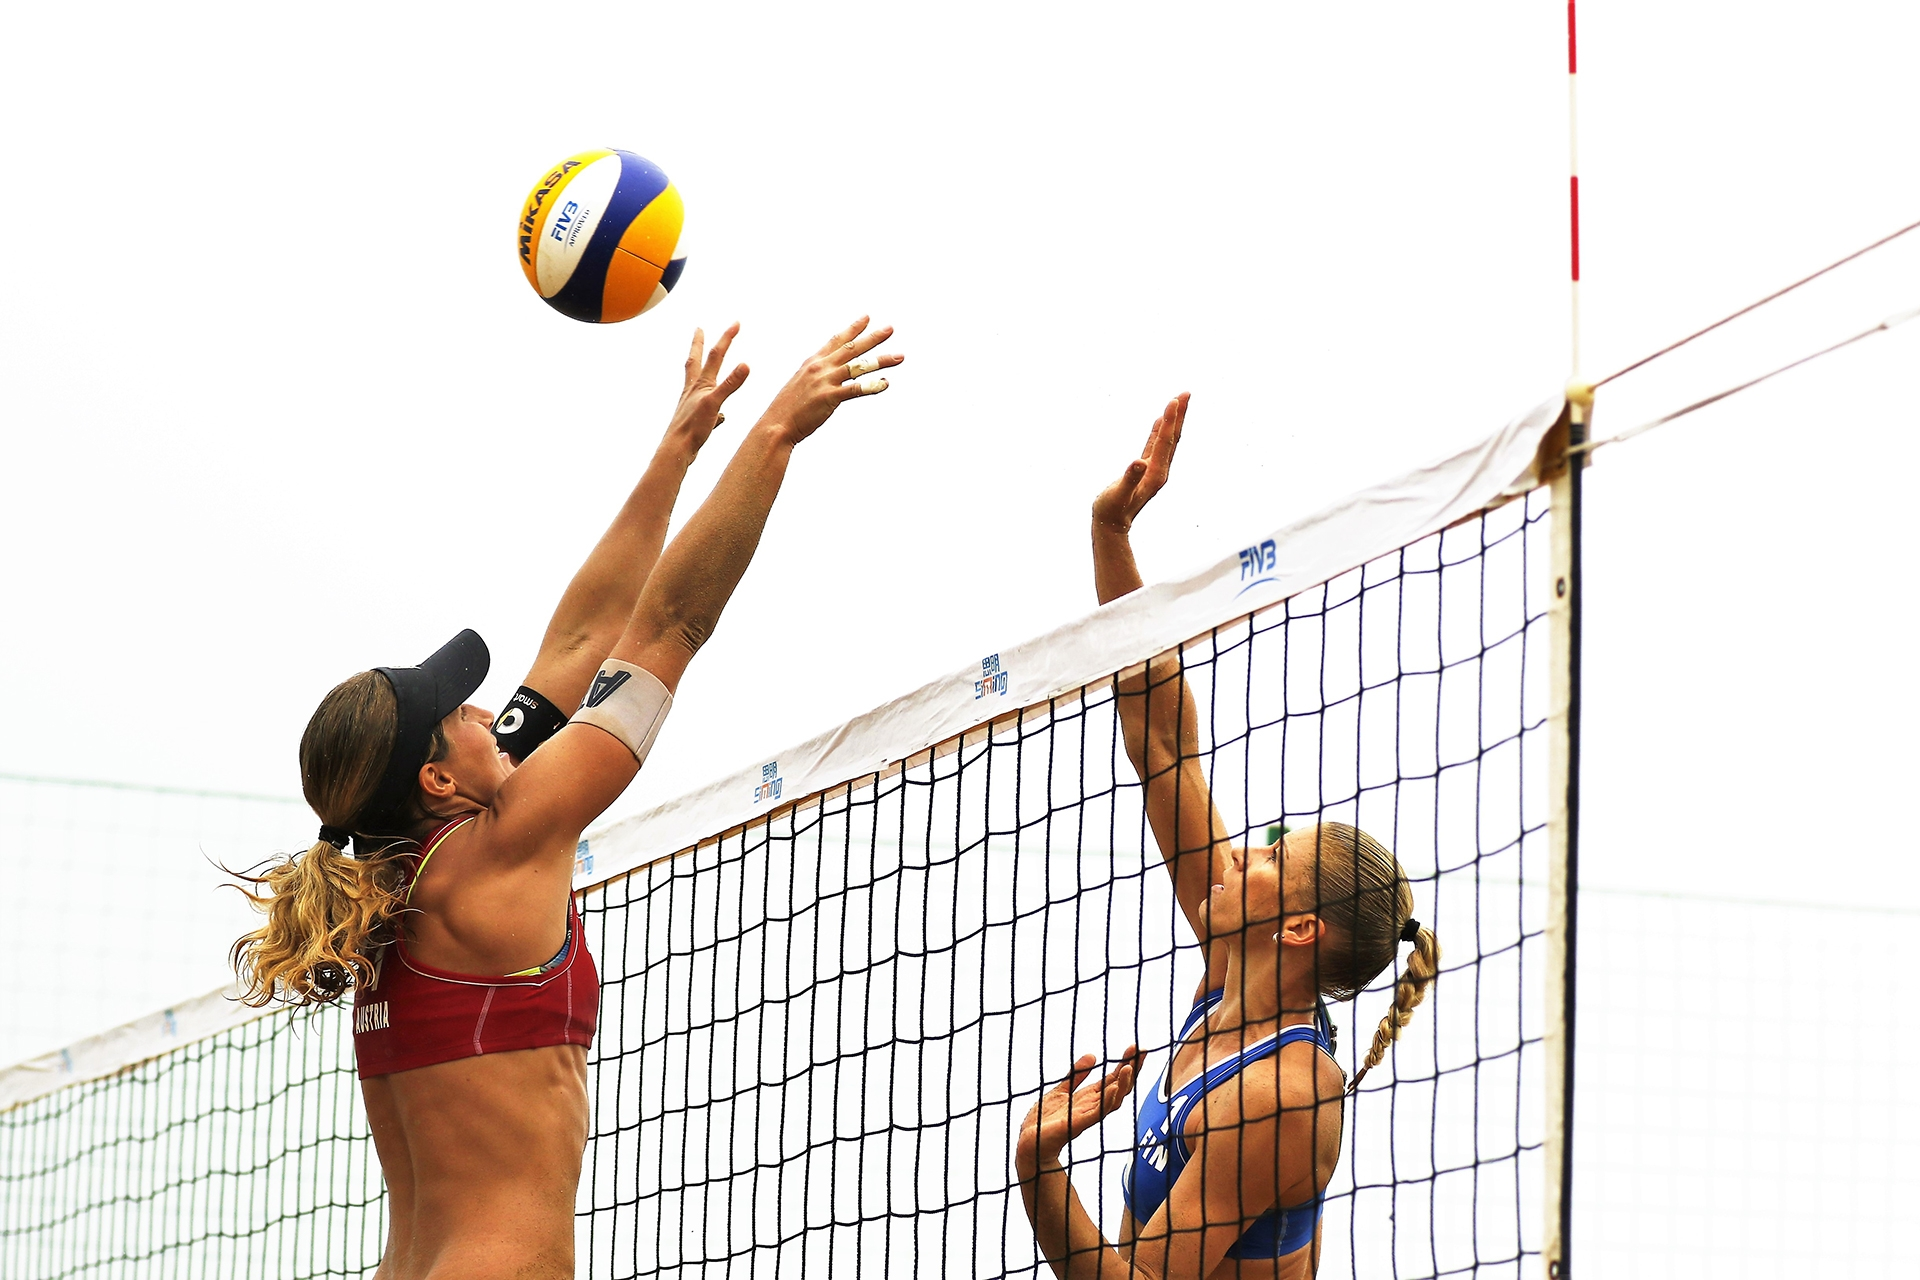 Barbara Hansel blocking the Finish attack credit: FIVB